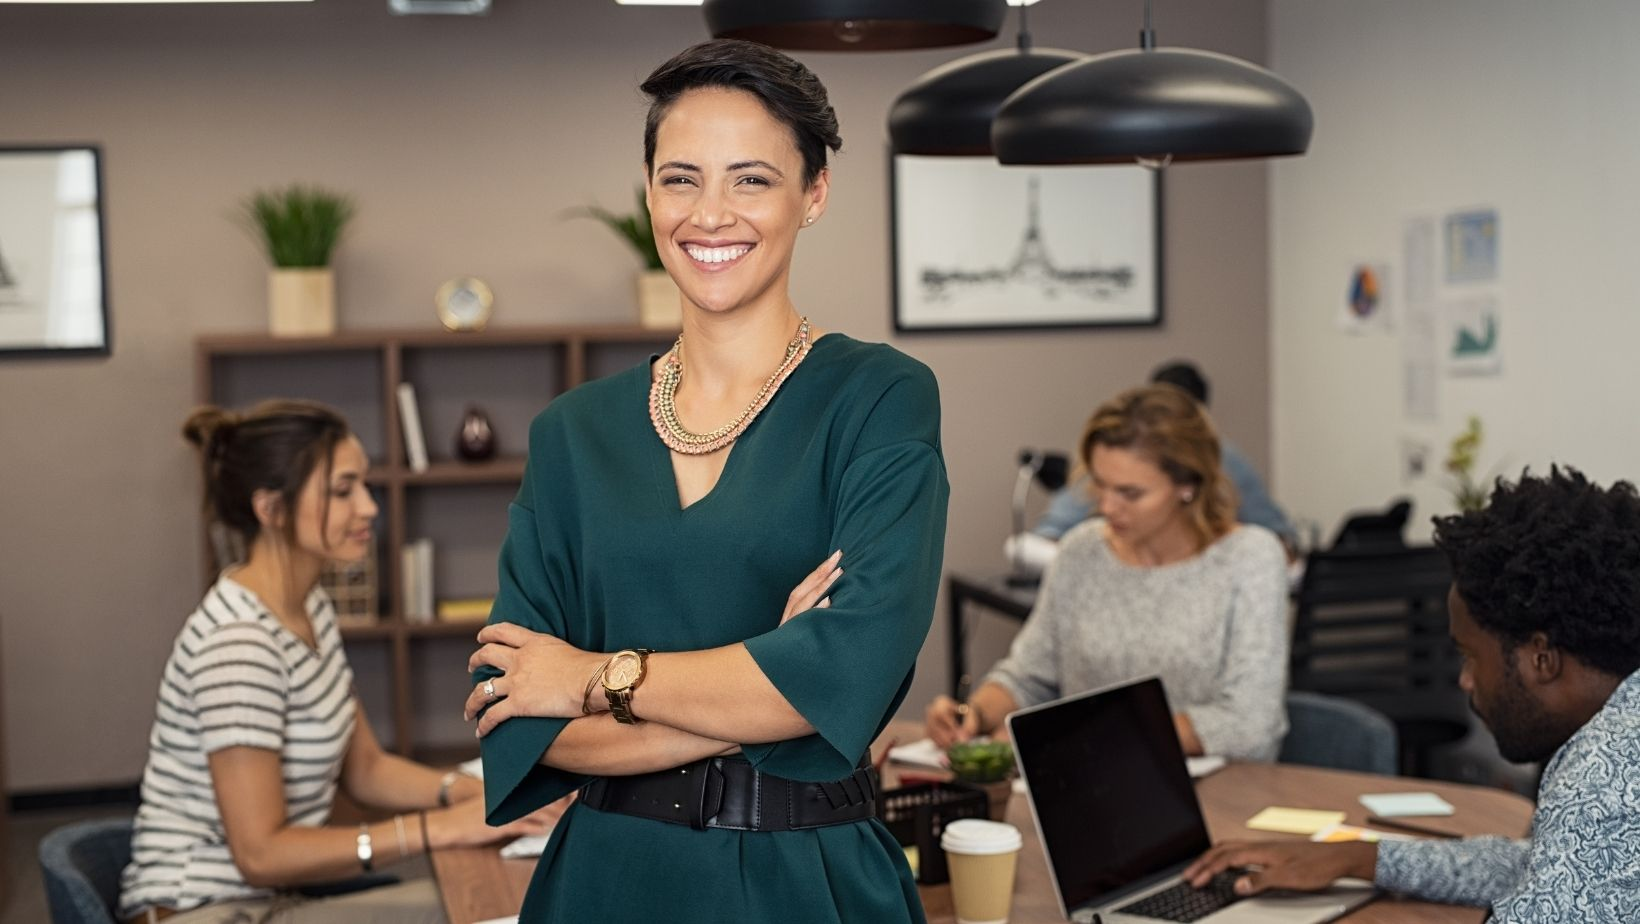 Diet Plan for Women: How to Become More Successful At Work and More Attractive